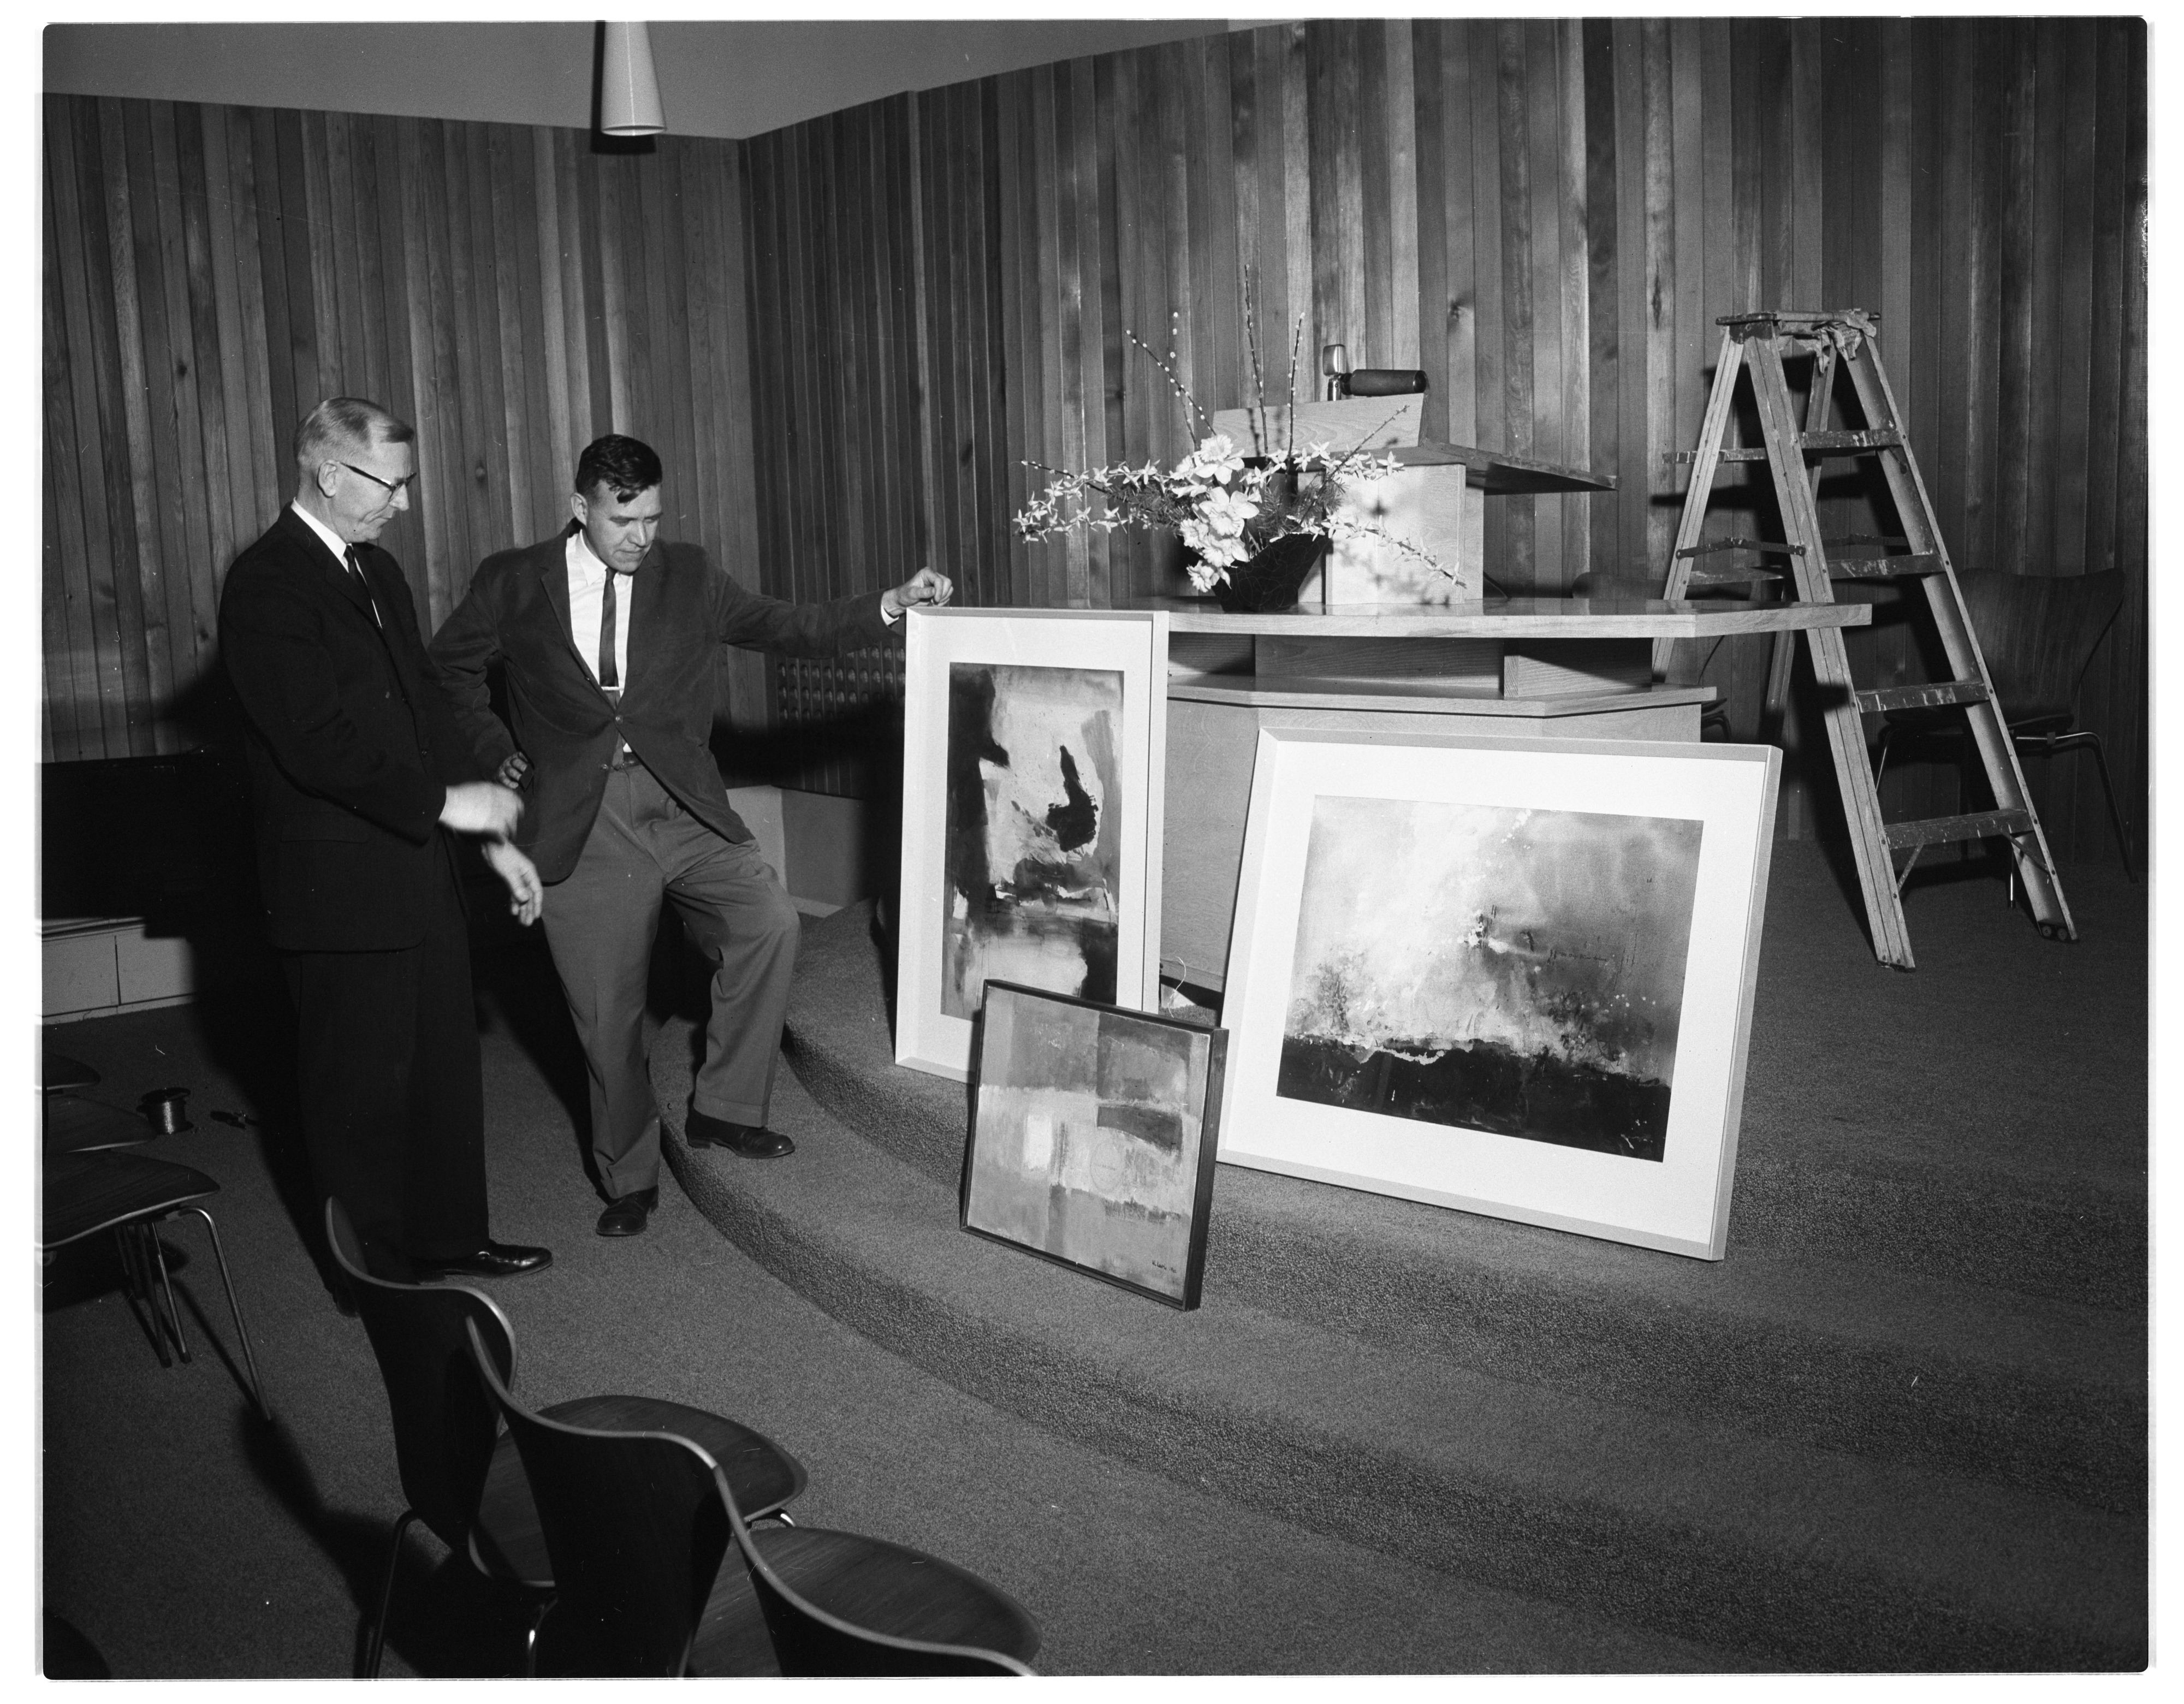 Paintings by University Professor William A. Lewis at First Unitarian Church, April 1963 image